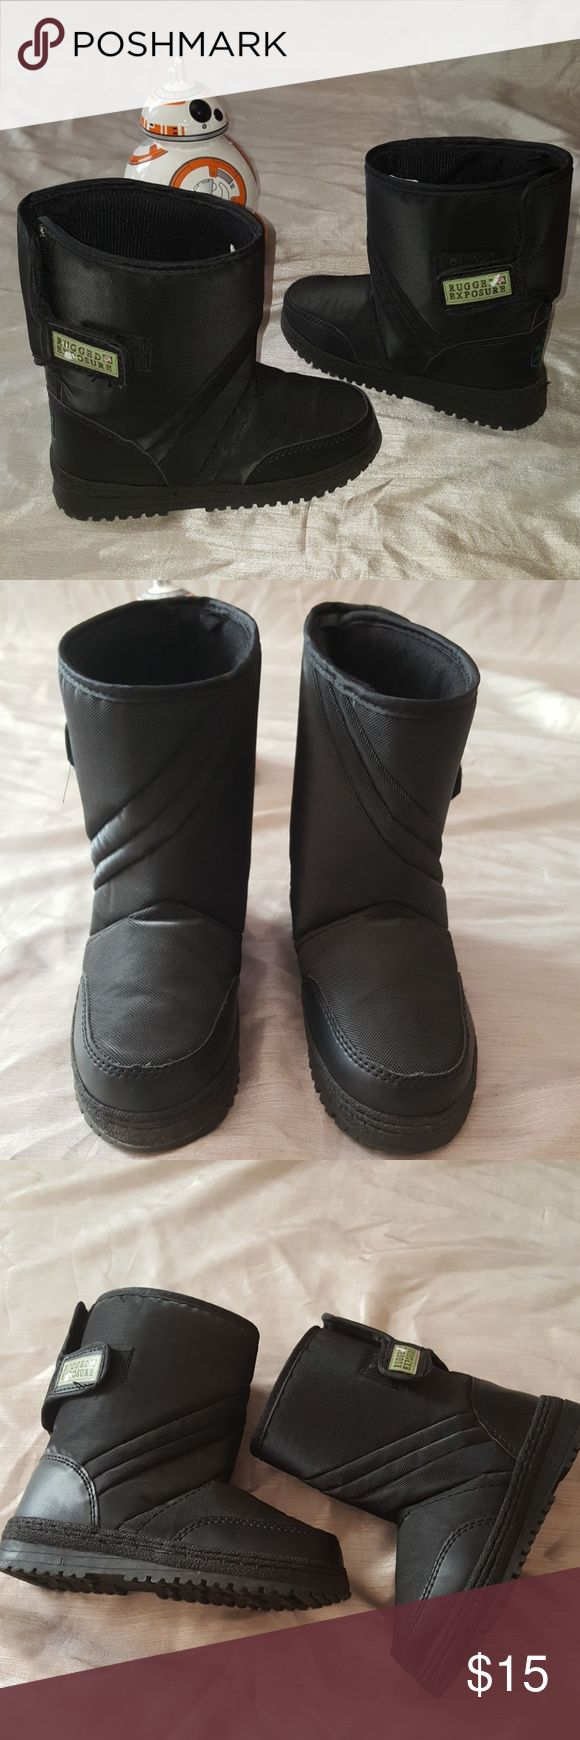 ❄Snow boots☃️ Pre-loved, kids snow boots. Worn a few times, in good condition. See pictures, side brand label has some  peeling.  Velcro in great condition. Perfect for kids to enjoy out in snowy cold weather.☃️ Rugged Exposure Shoes Rain & Snow Boots